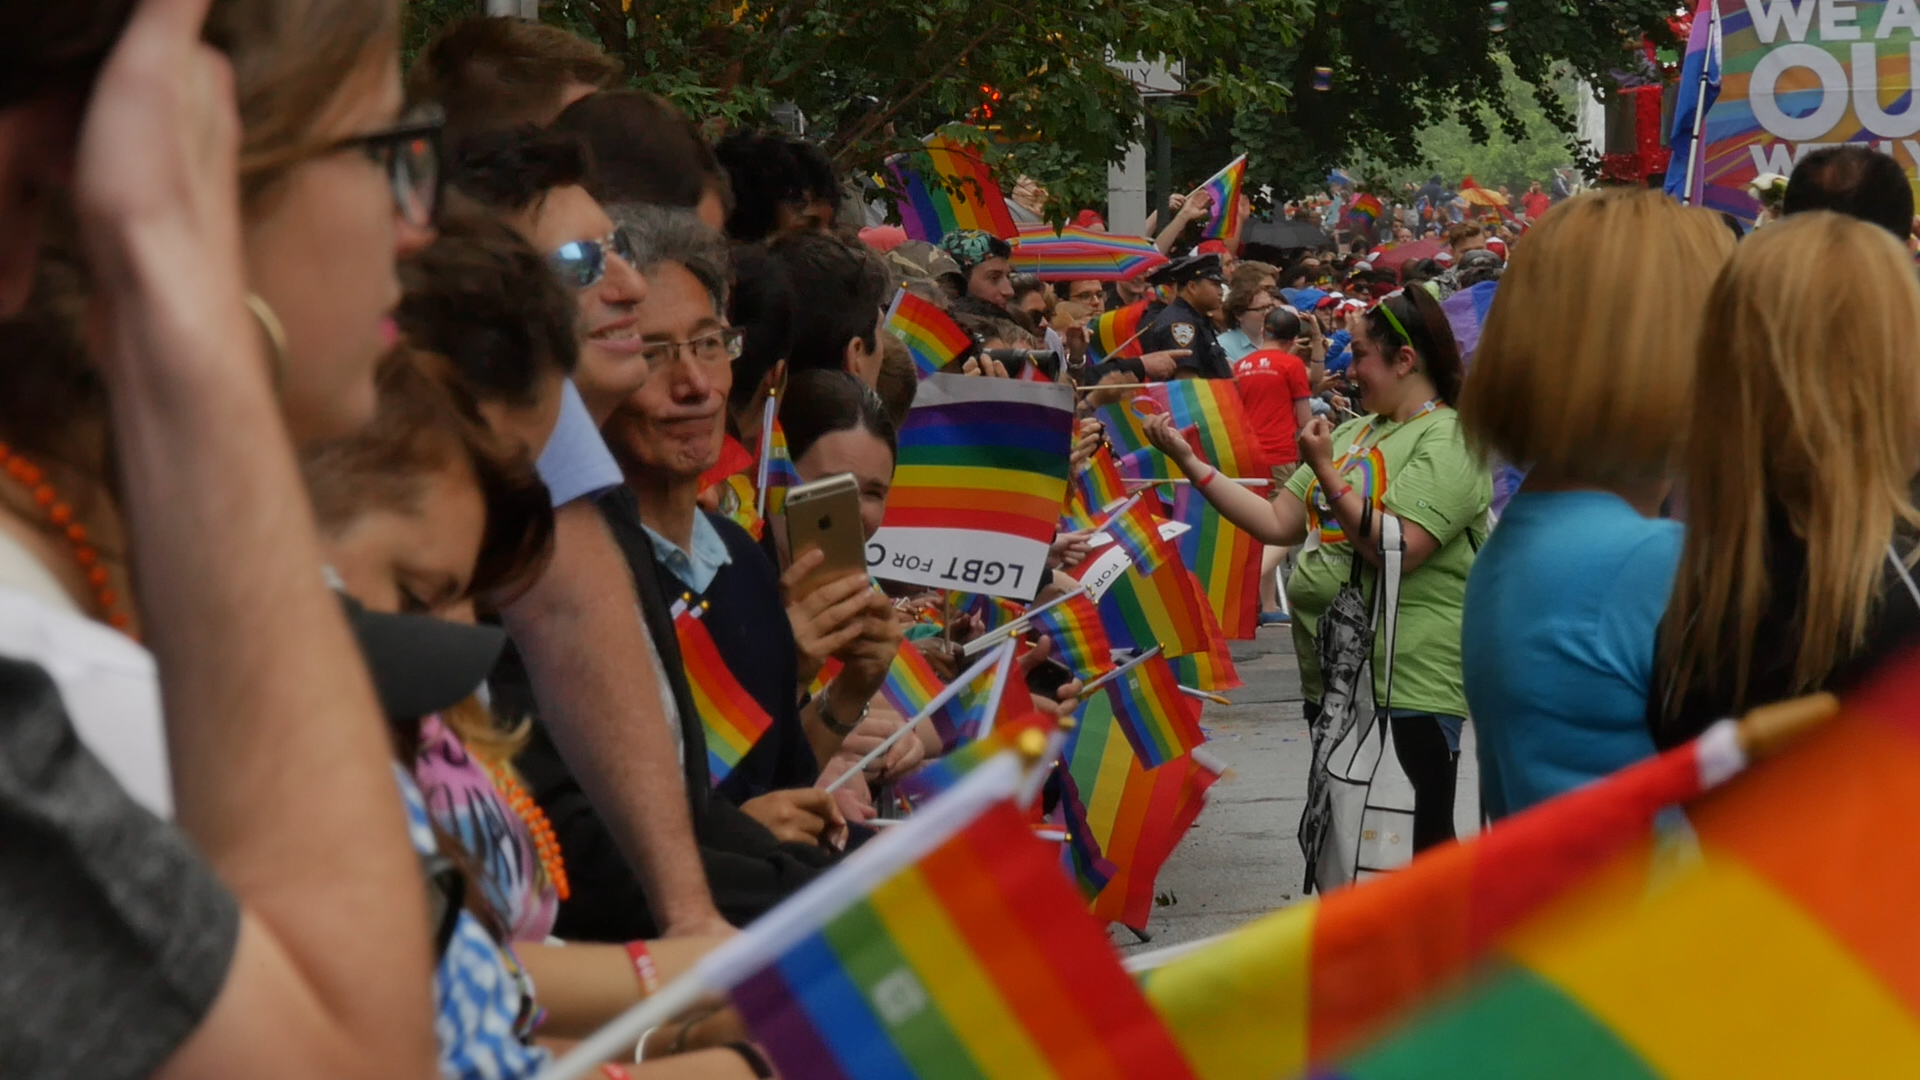 New York City celebrates marriage equality, gay pride